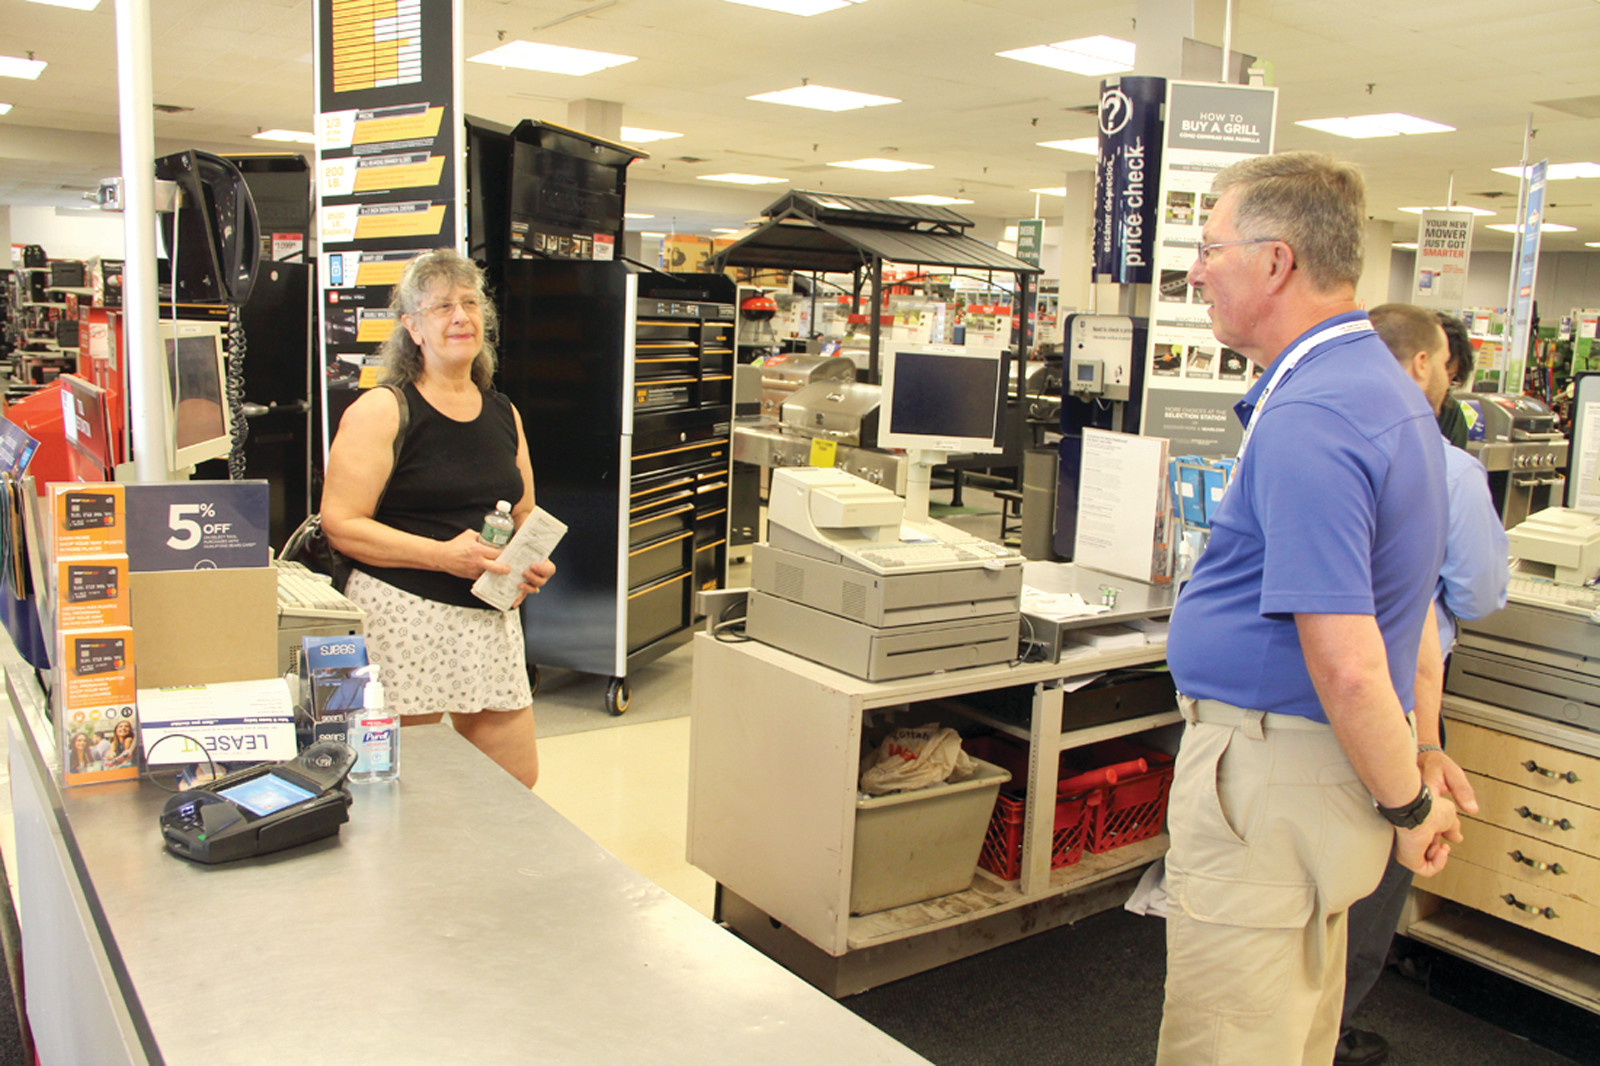 ALWAYS GETS ANSWERS: Paula Burns of Johnston lamented that with the closing of Sears she knows of no other store where associates are so helpful in answering questions and providing service.